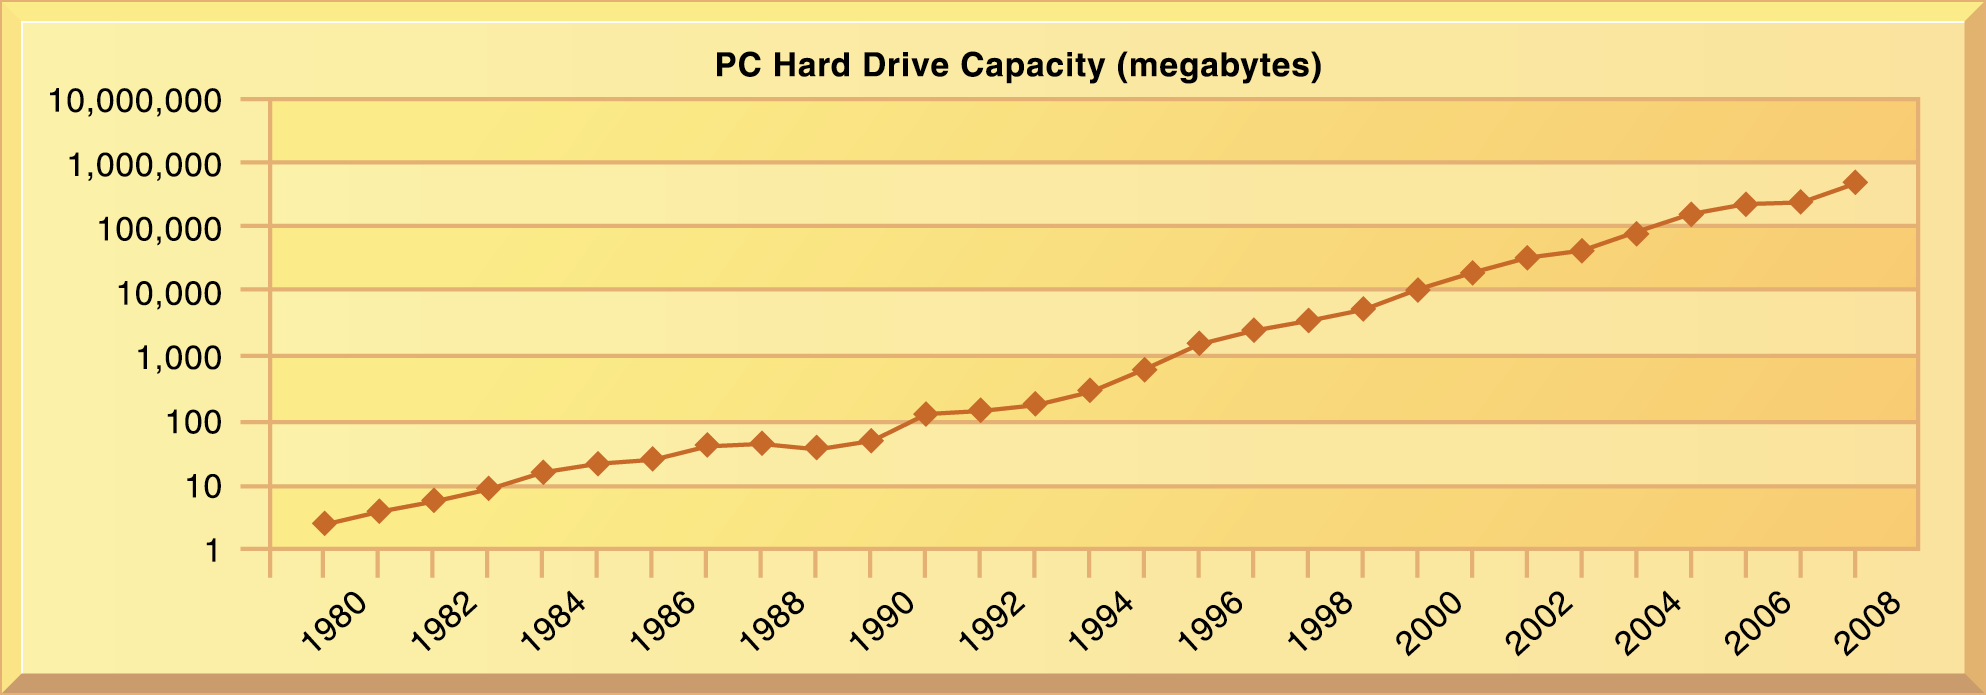 IT Infrastructure The Capacity of Hard Drives Grows Exponentially 1980-2007 From 1980 to 1990, hard disk drive capacities for PCs grew